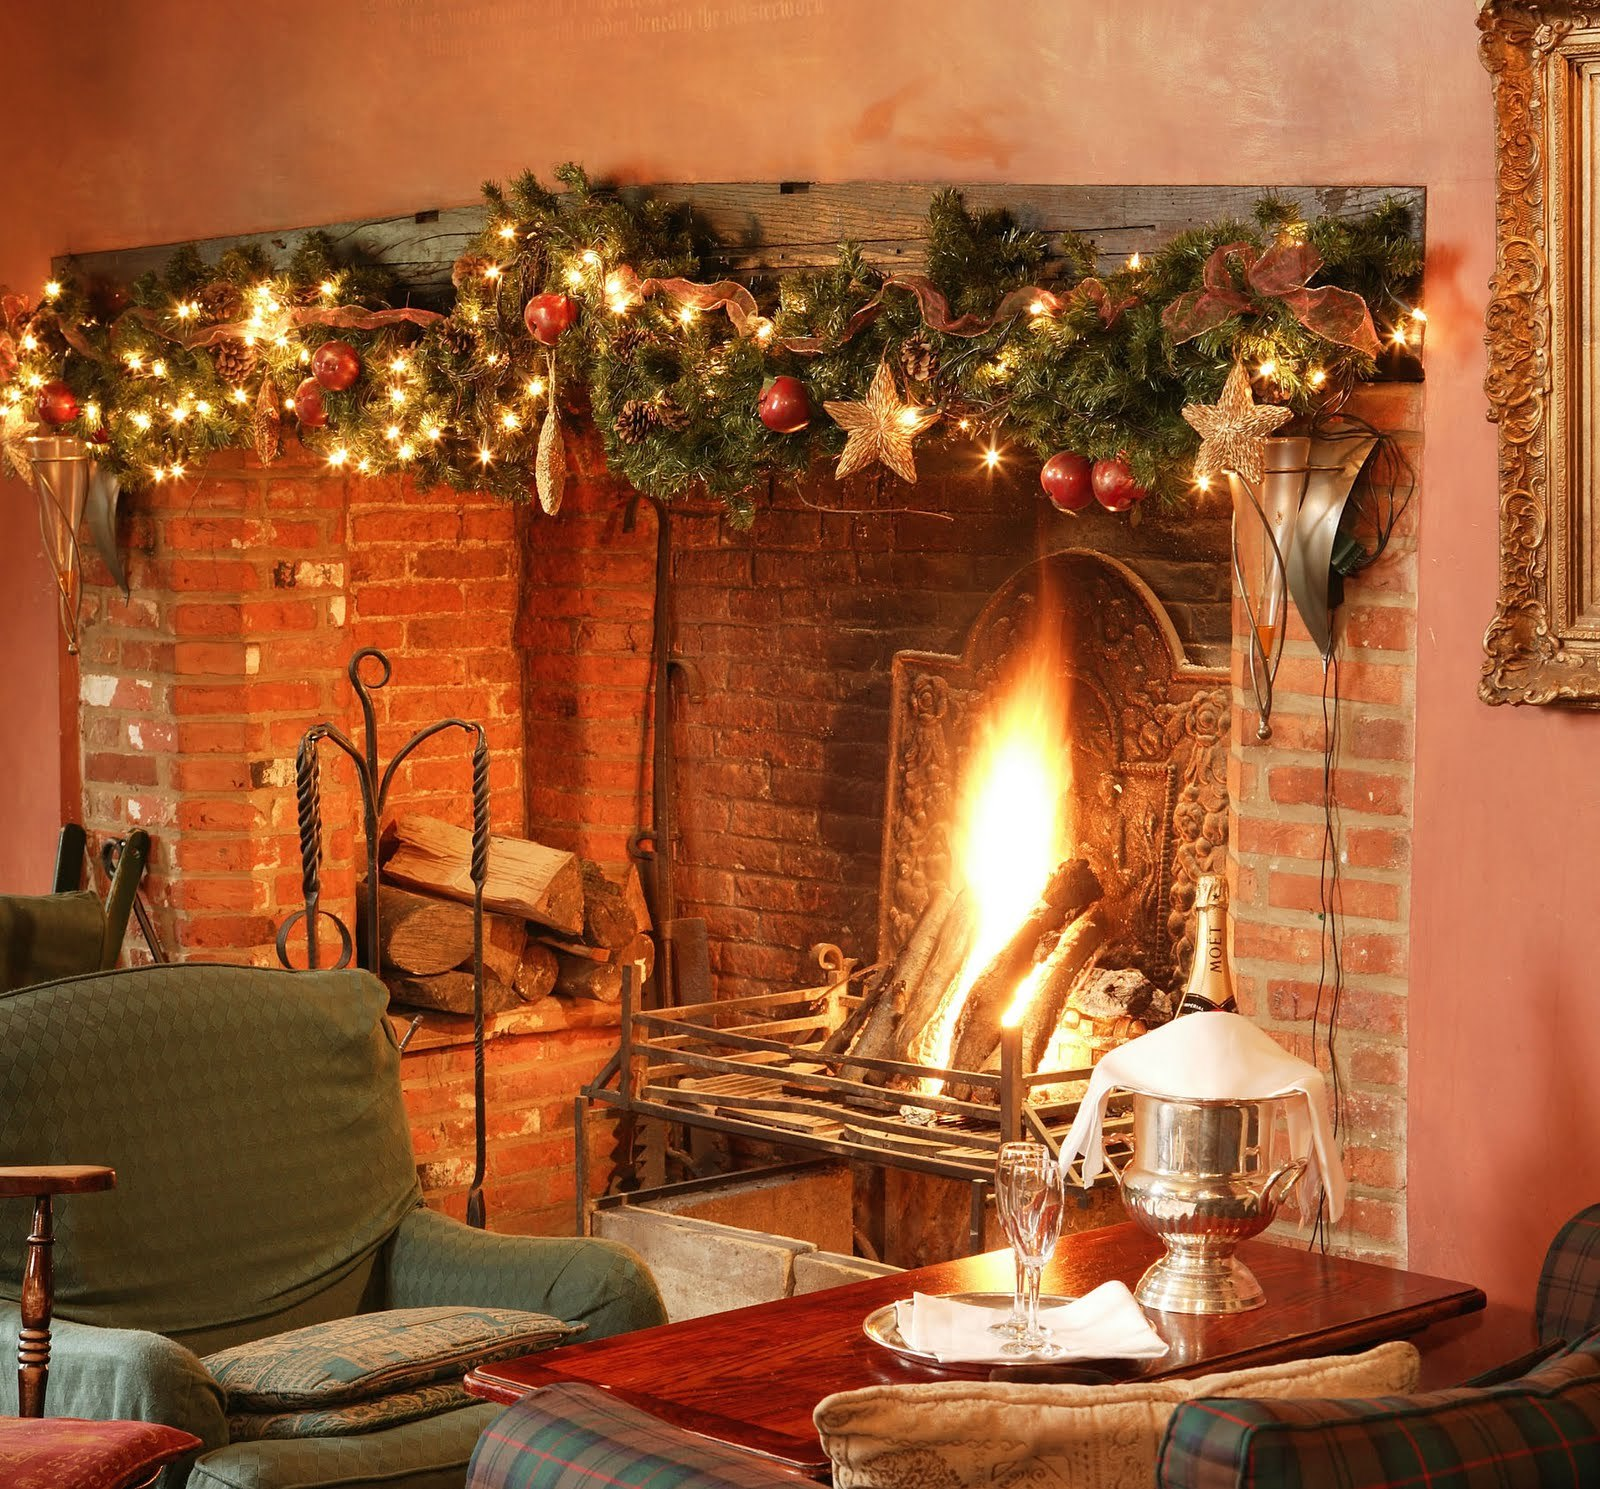 Places to sit by a roaring fire in Bury St Edmunds & Beyond